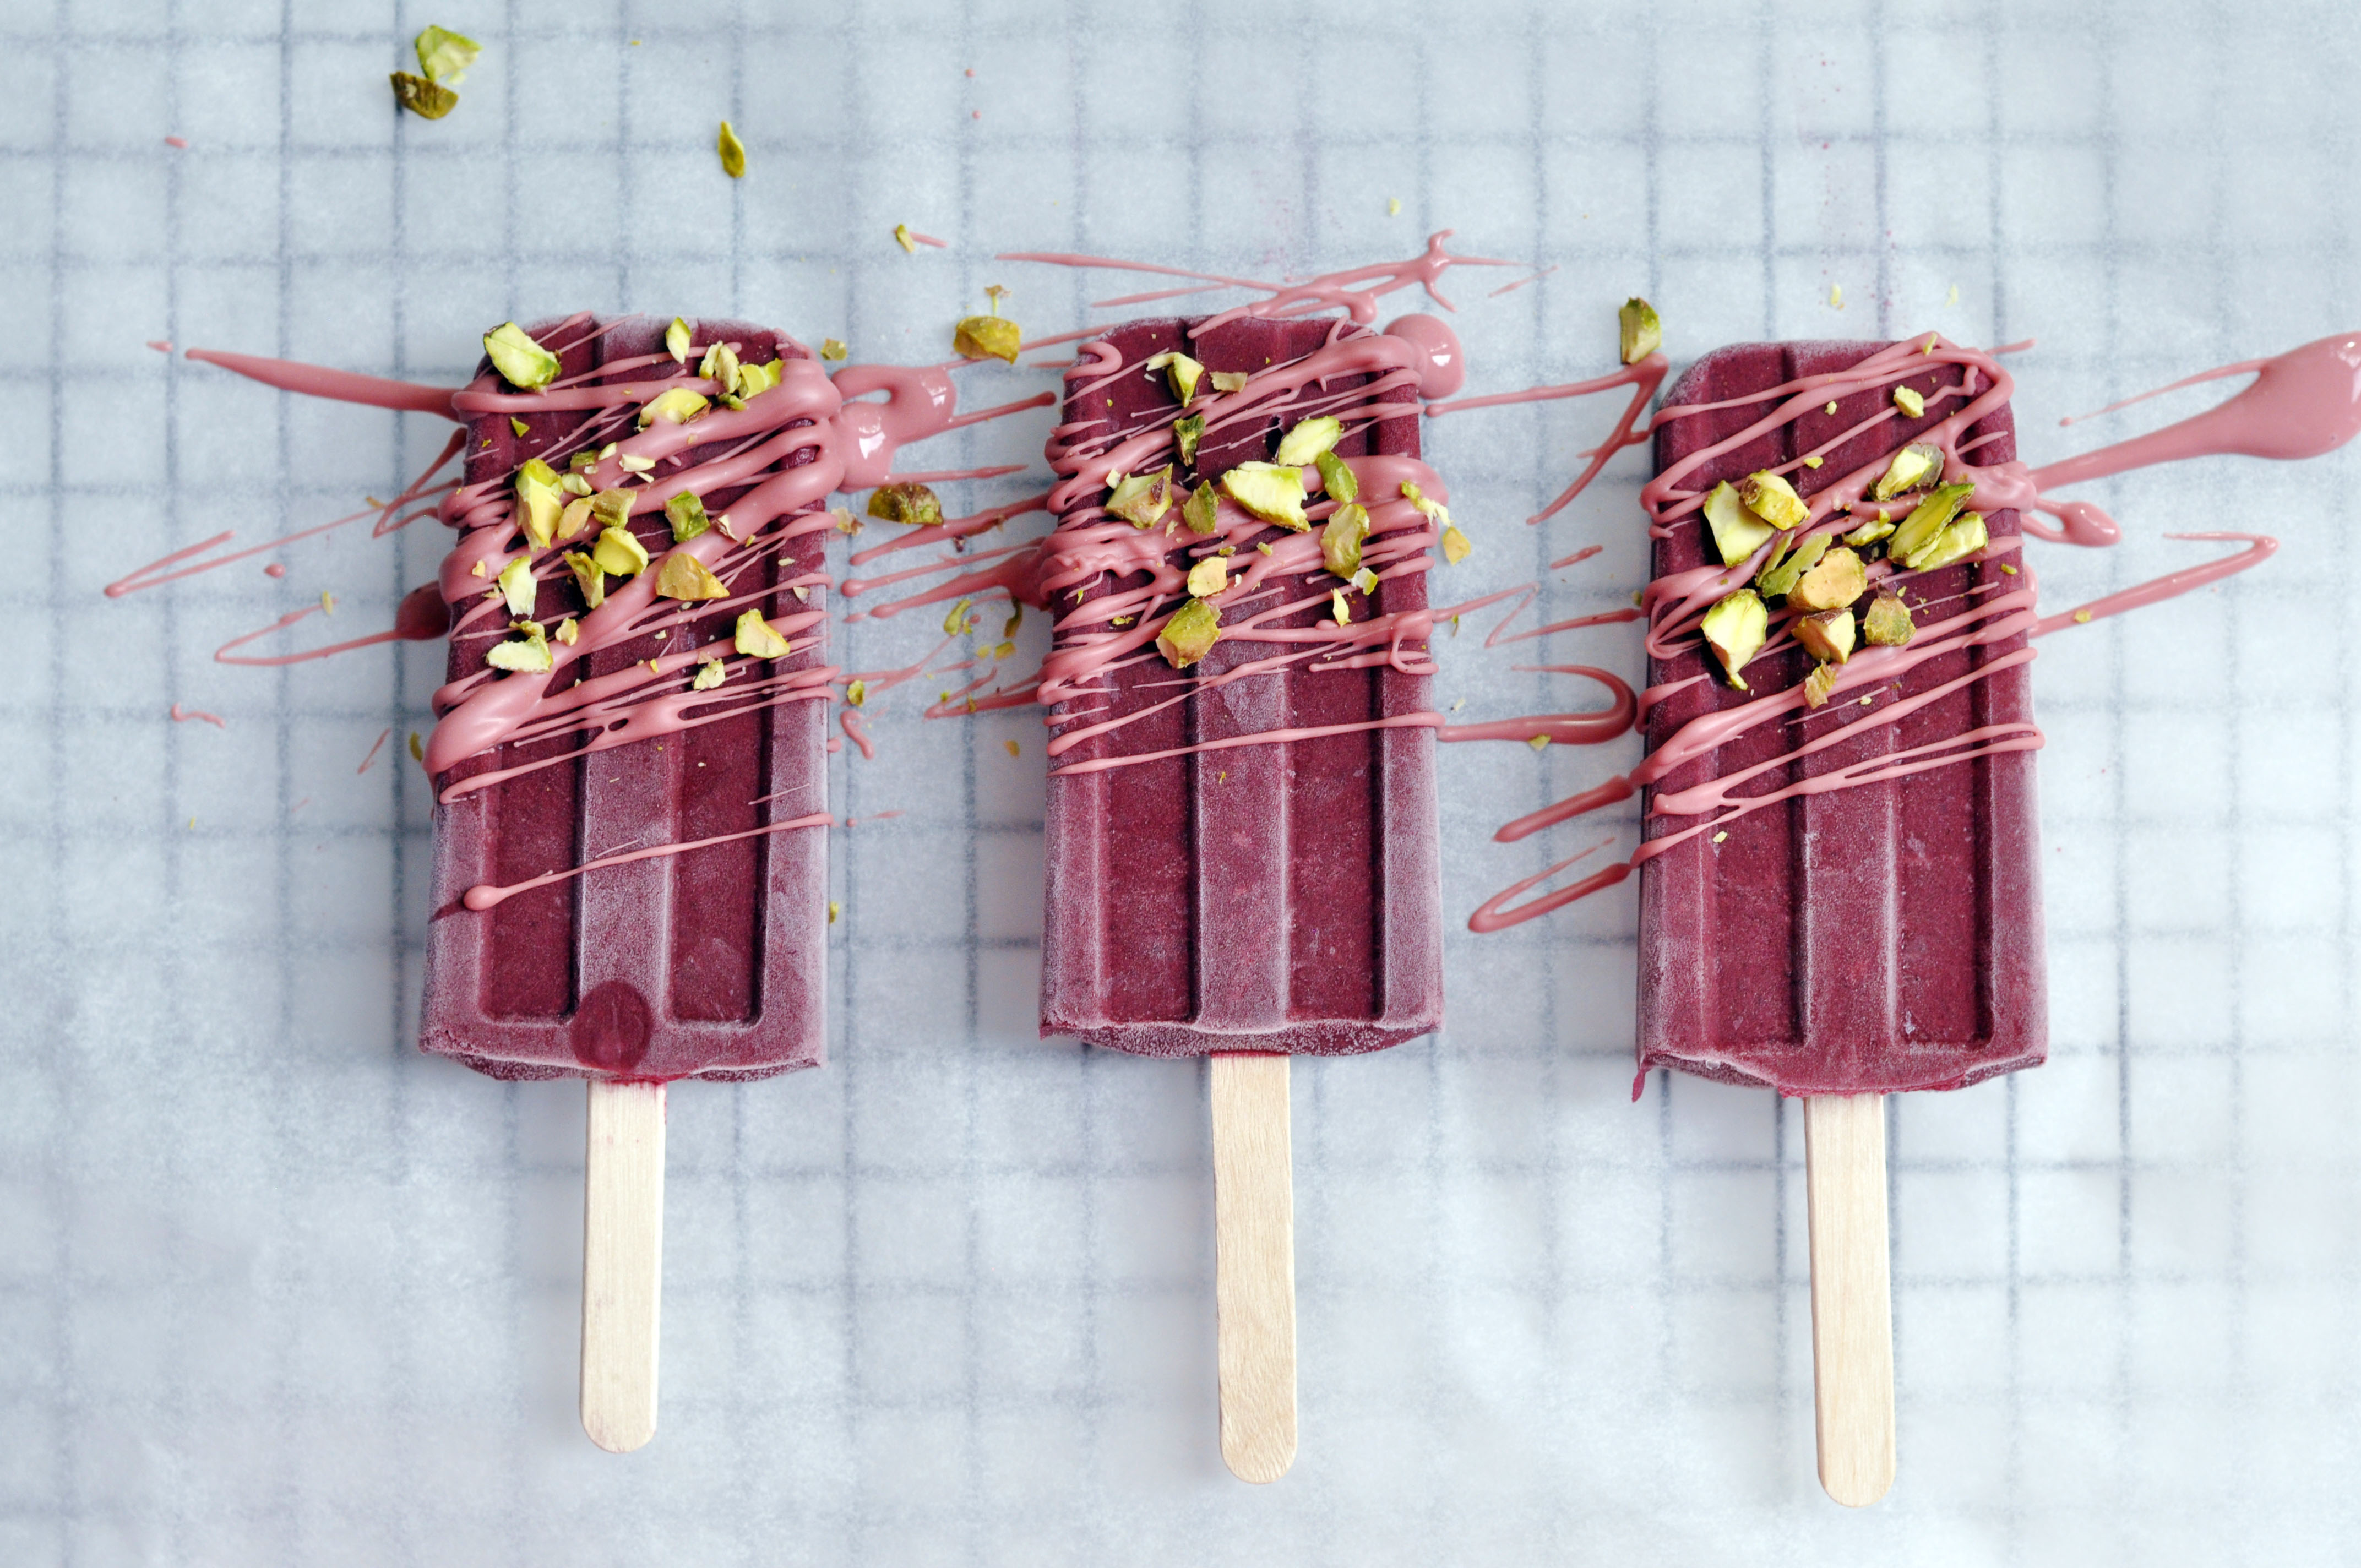 Low Histamine Blackberry Popsicle's decorated with Ruby Chocolate and pistachios